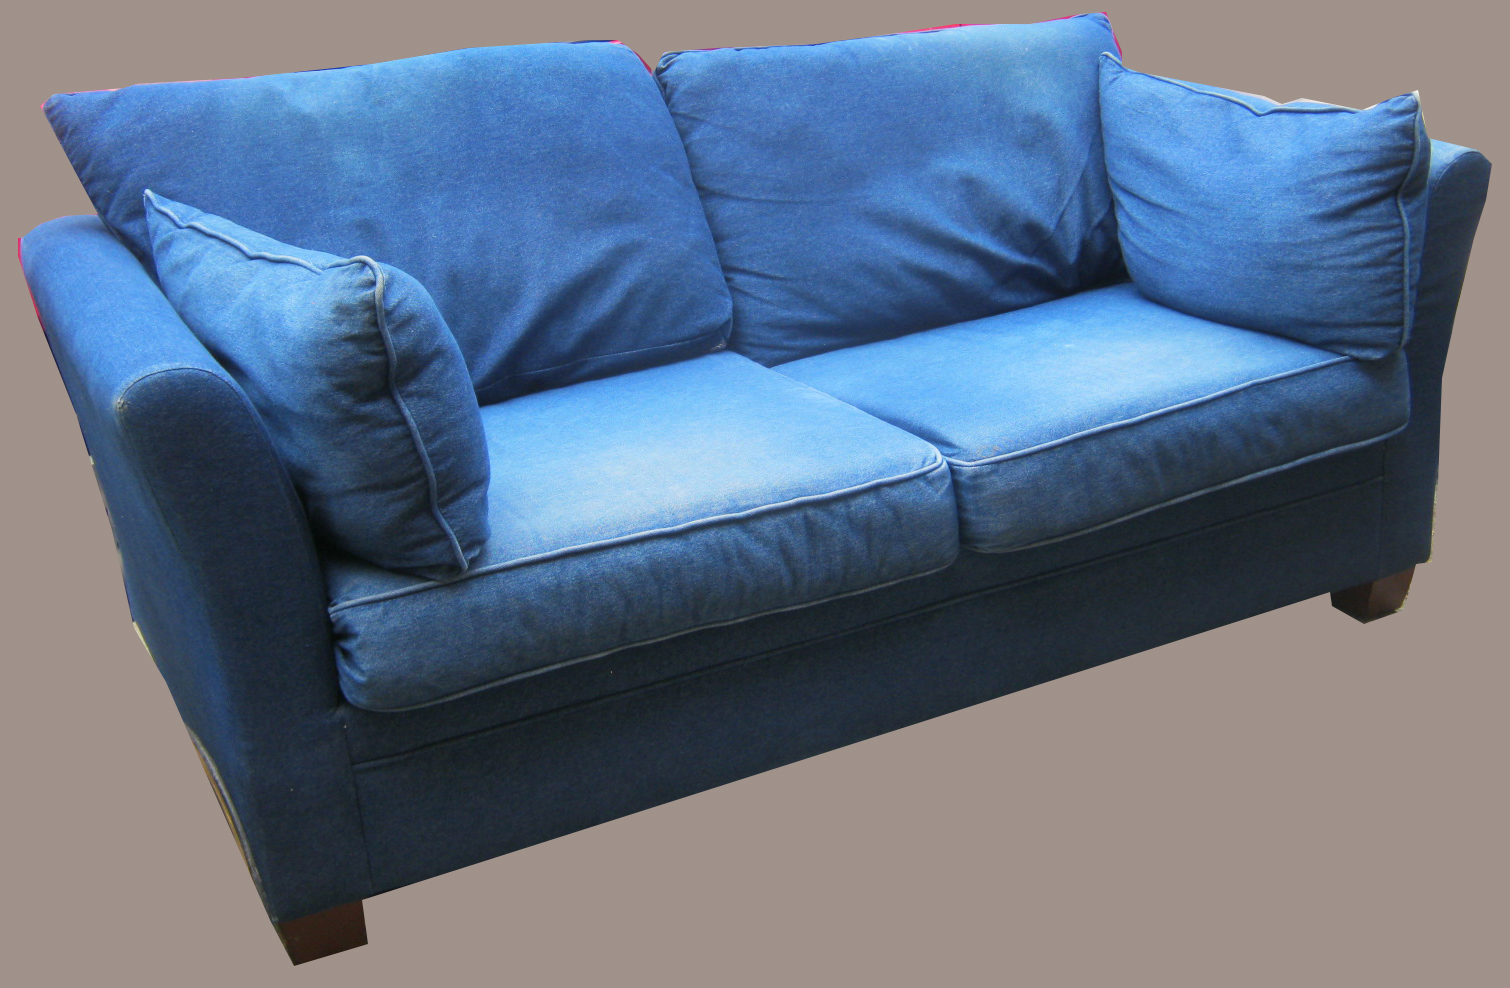 Uhuru Furniture Collectibles Denim Sofa Sold